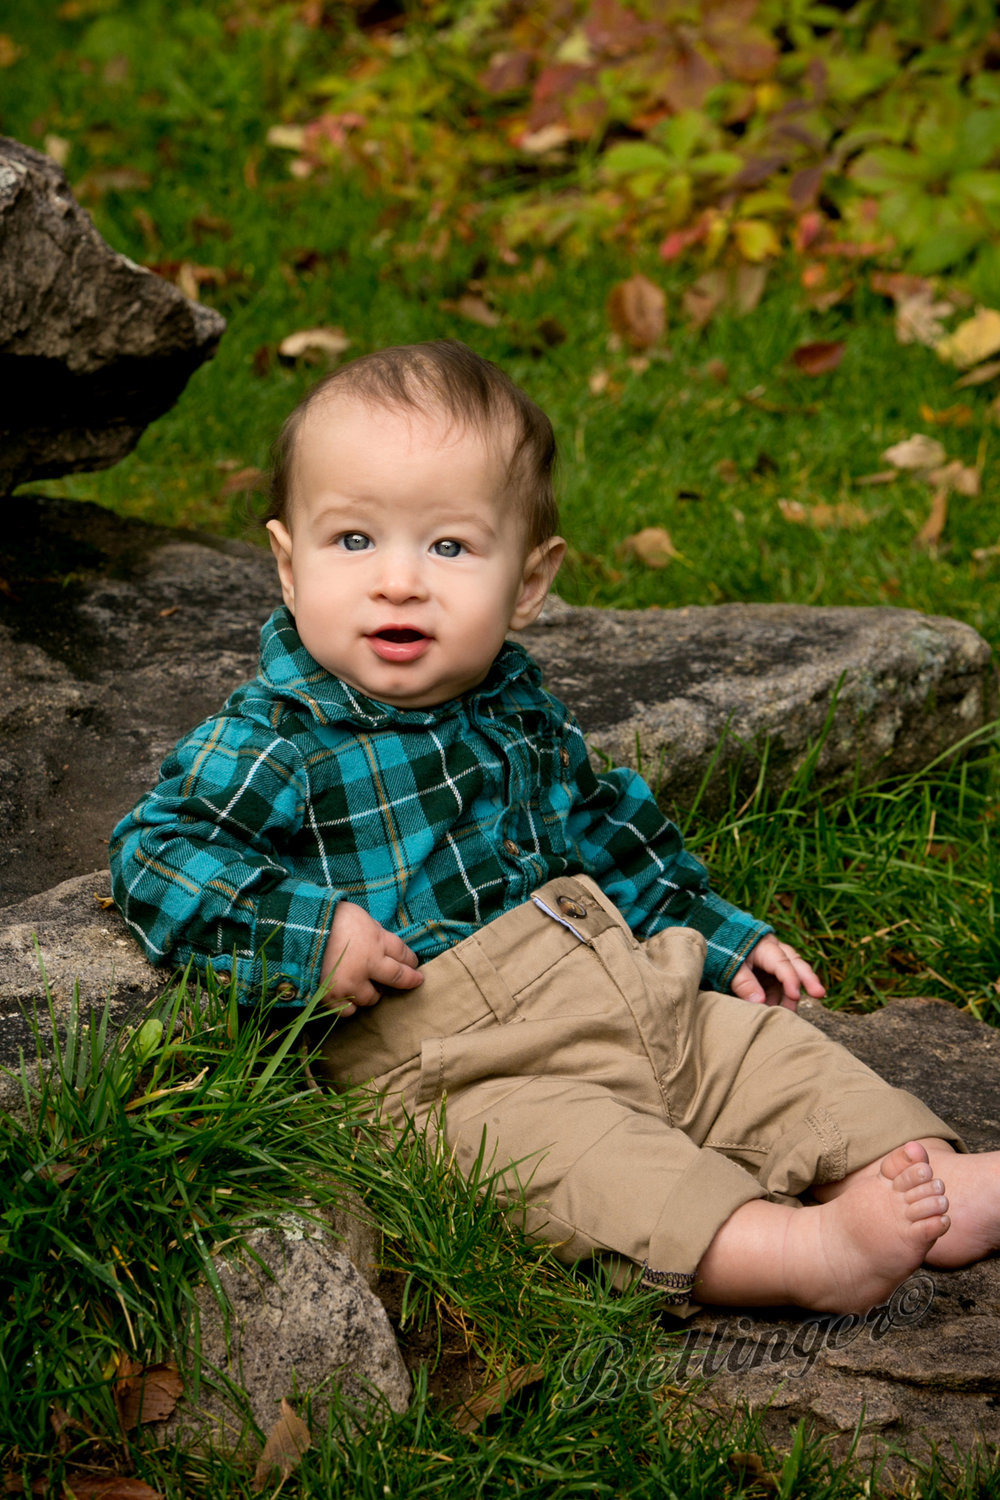 - At 6 months old, he got to hang out in our outdoor studio with the fall colors.  It was a beautiful day.